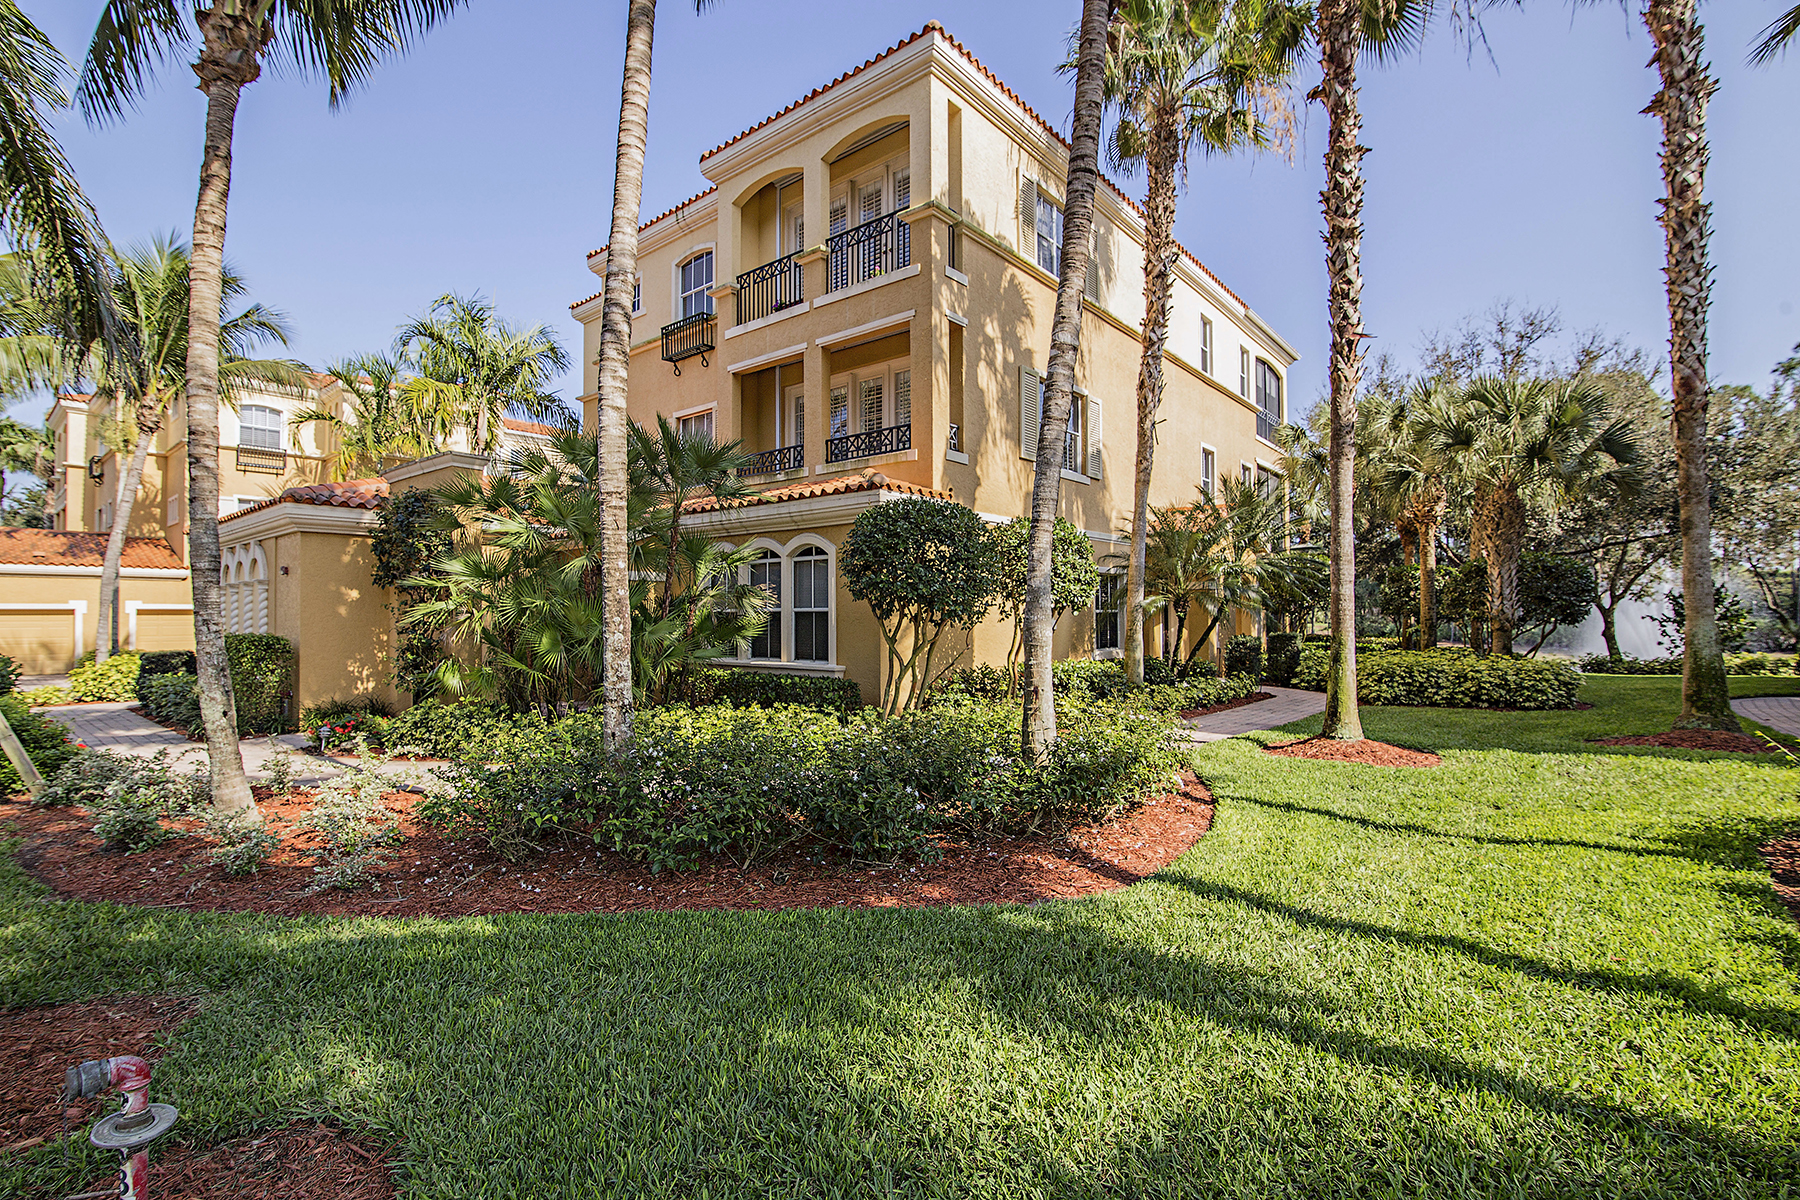 Condominium for Rent at TIBURON - BOLERO 2630 Bolero Dr 101, Naples, Florida 34109 United States